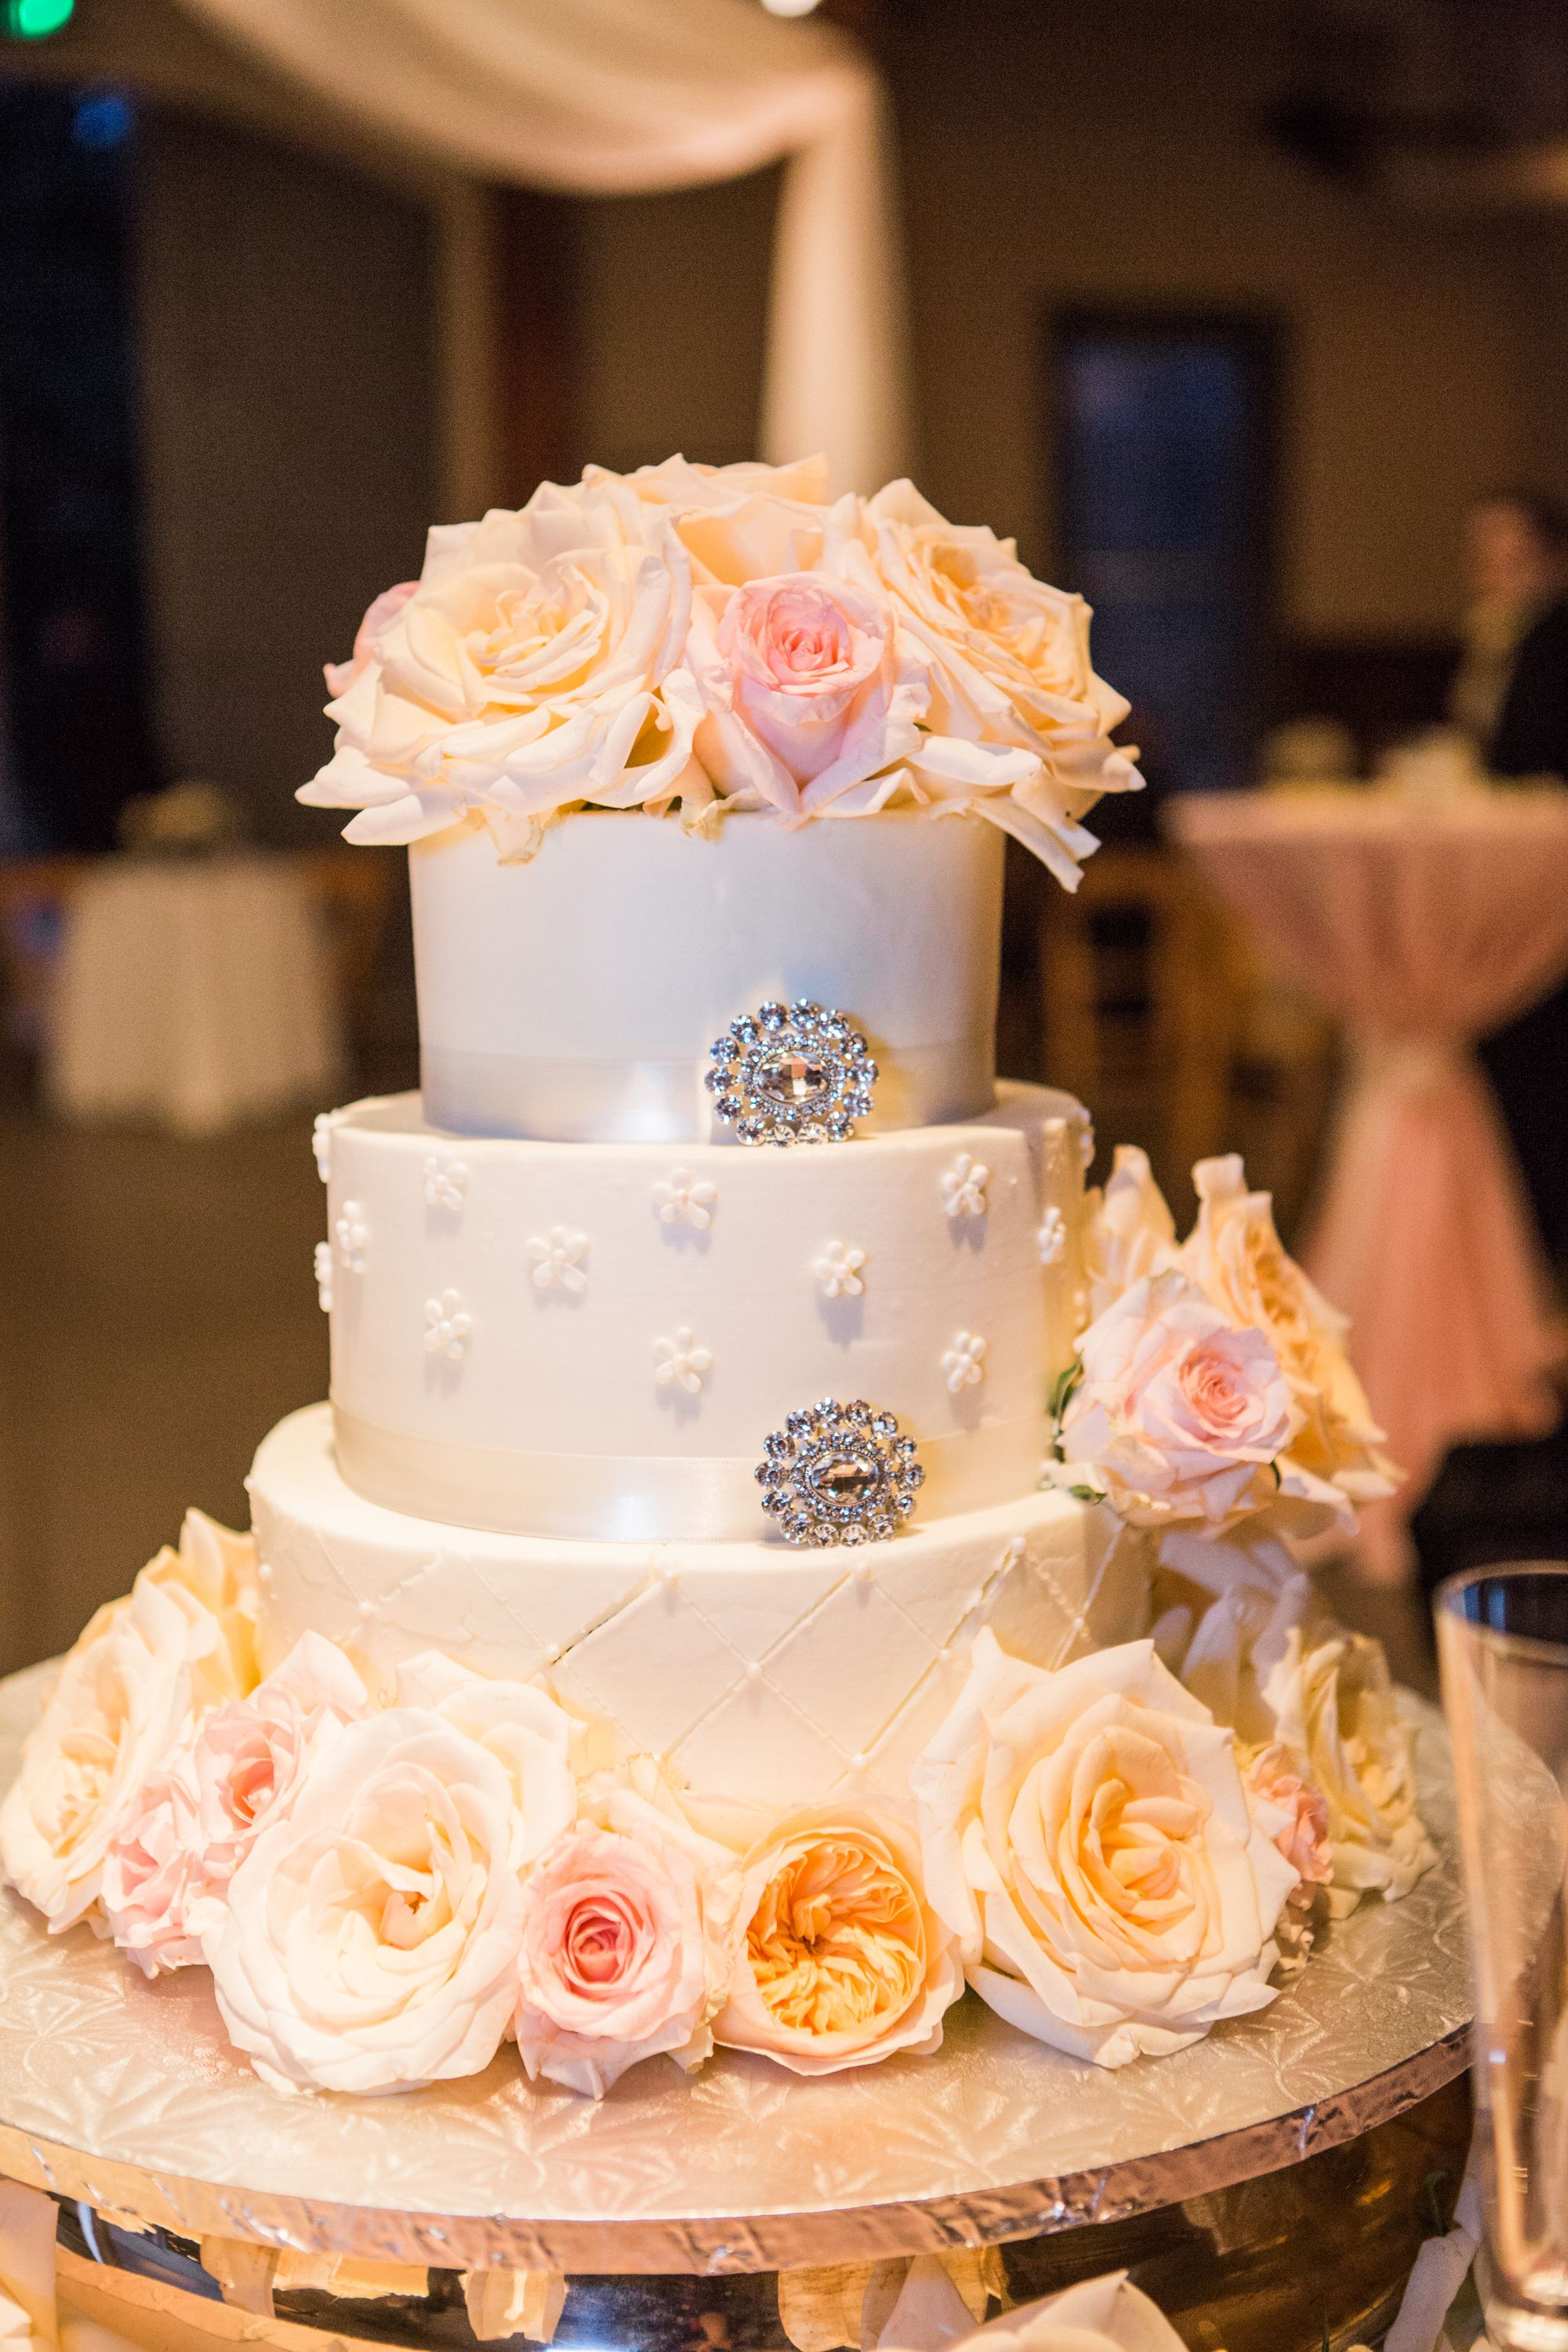 Cake by Puffy Muffin Photography by Sarah Sidwell